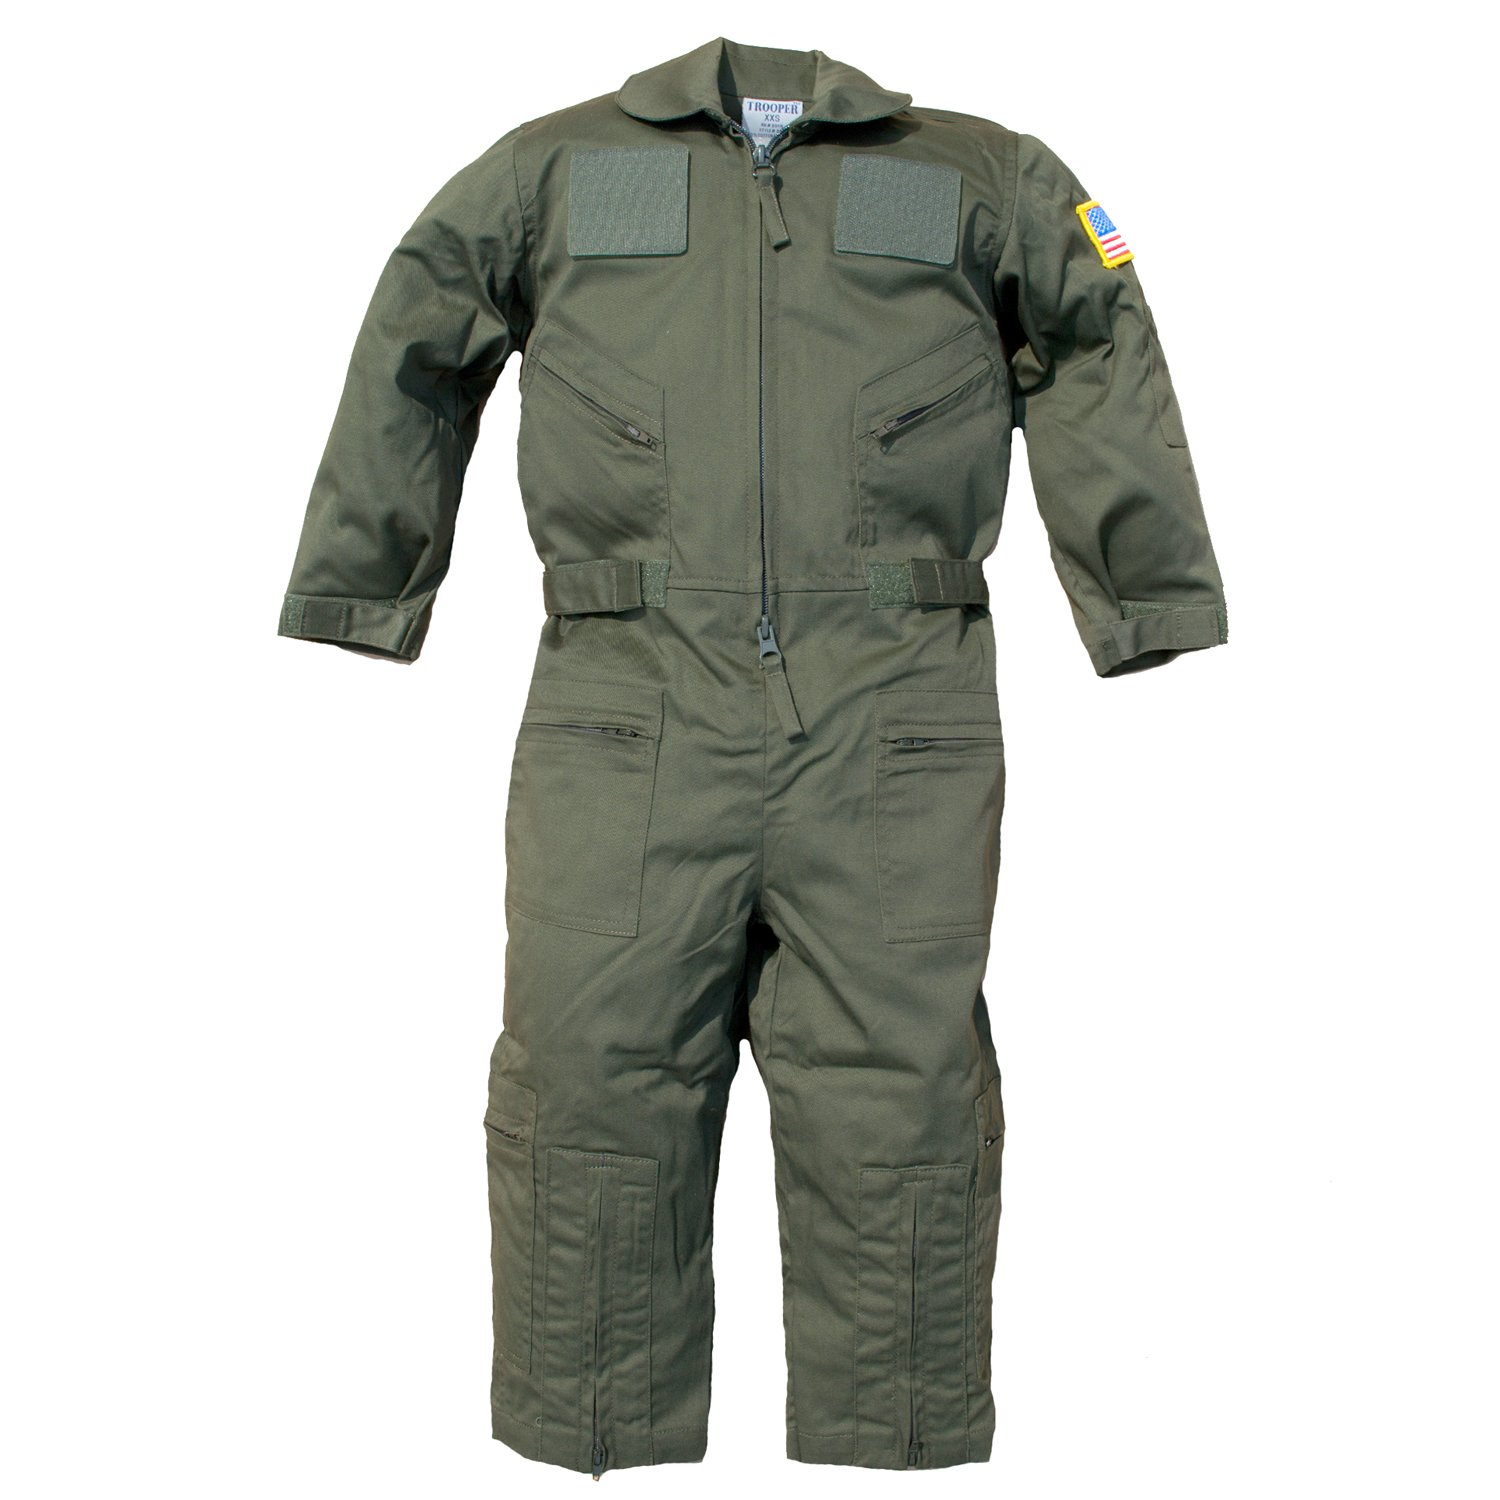 Trendy Apparel Shop Kid's US Pilot Flight Suit Uniform with Hook and Loop Patch - Olive - S by Trendy Apparel Shop